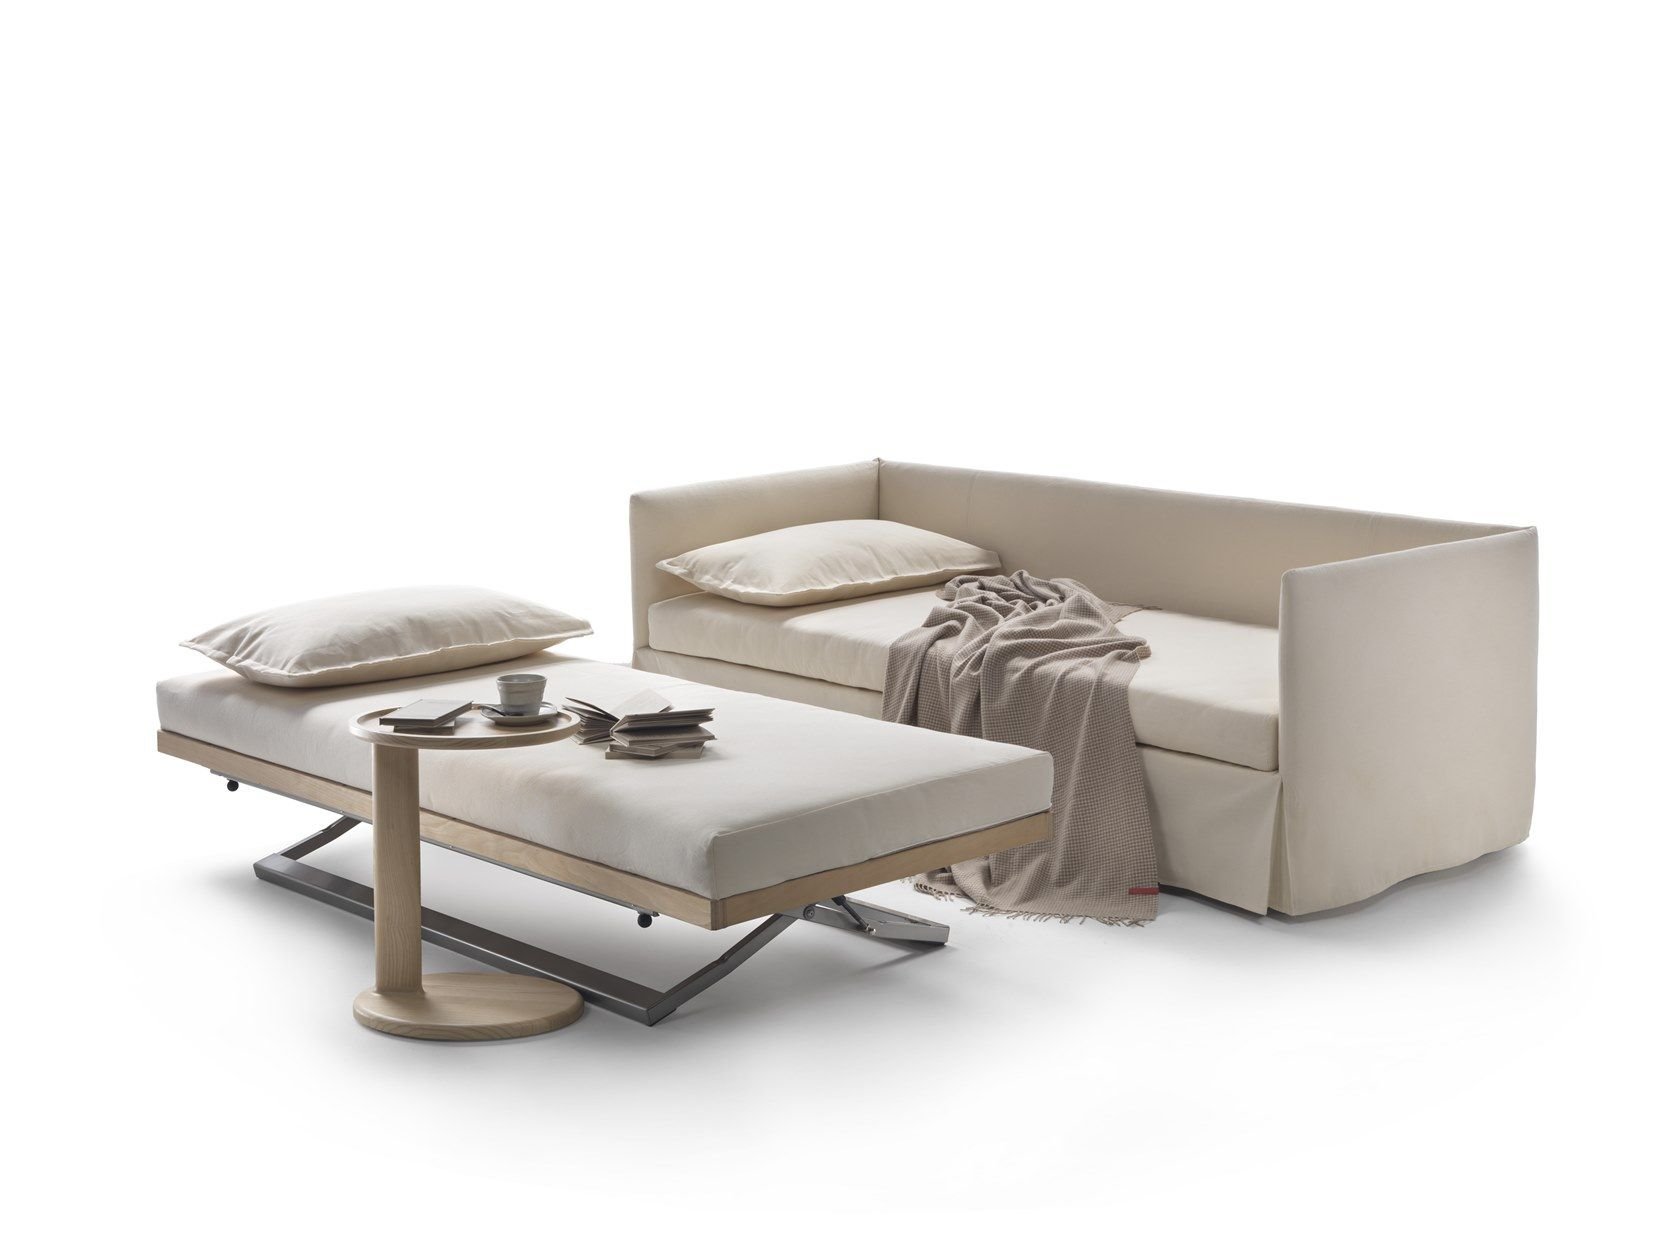 Fabric Sofa Bed With Removable Cover Twins By Flexform Design Giulio Manzoni In 2020 Sofa Bed Fabric Sofa Fabric Sofa Bed